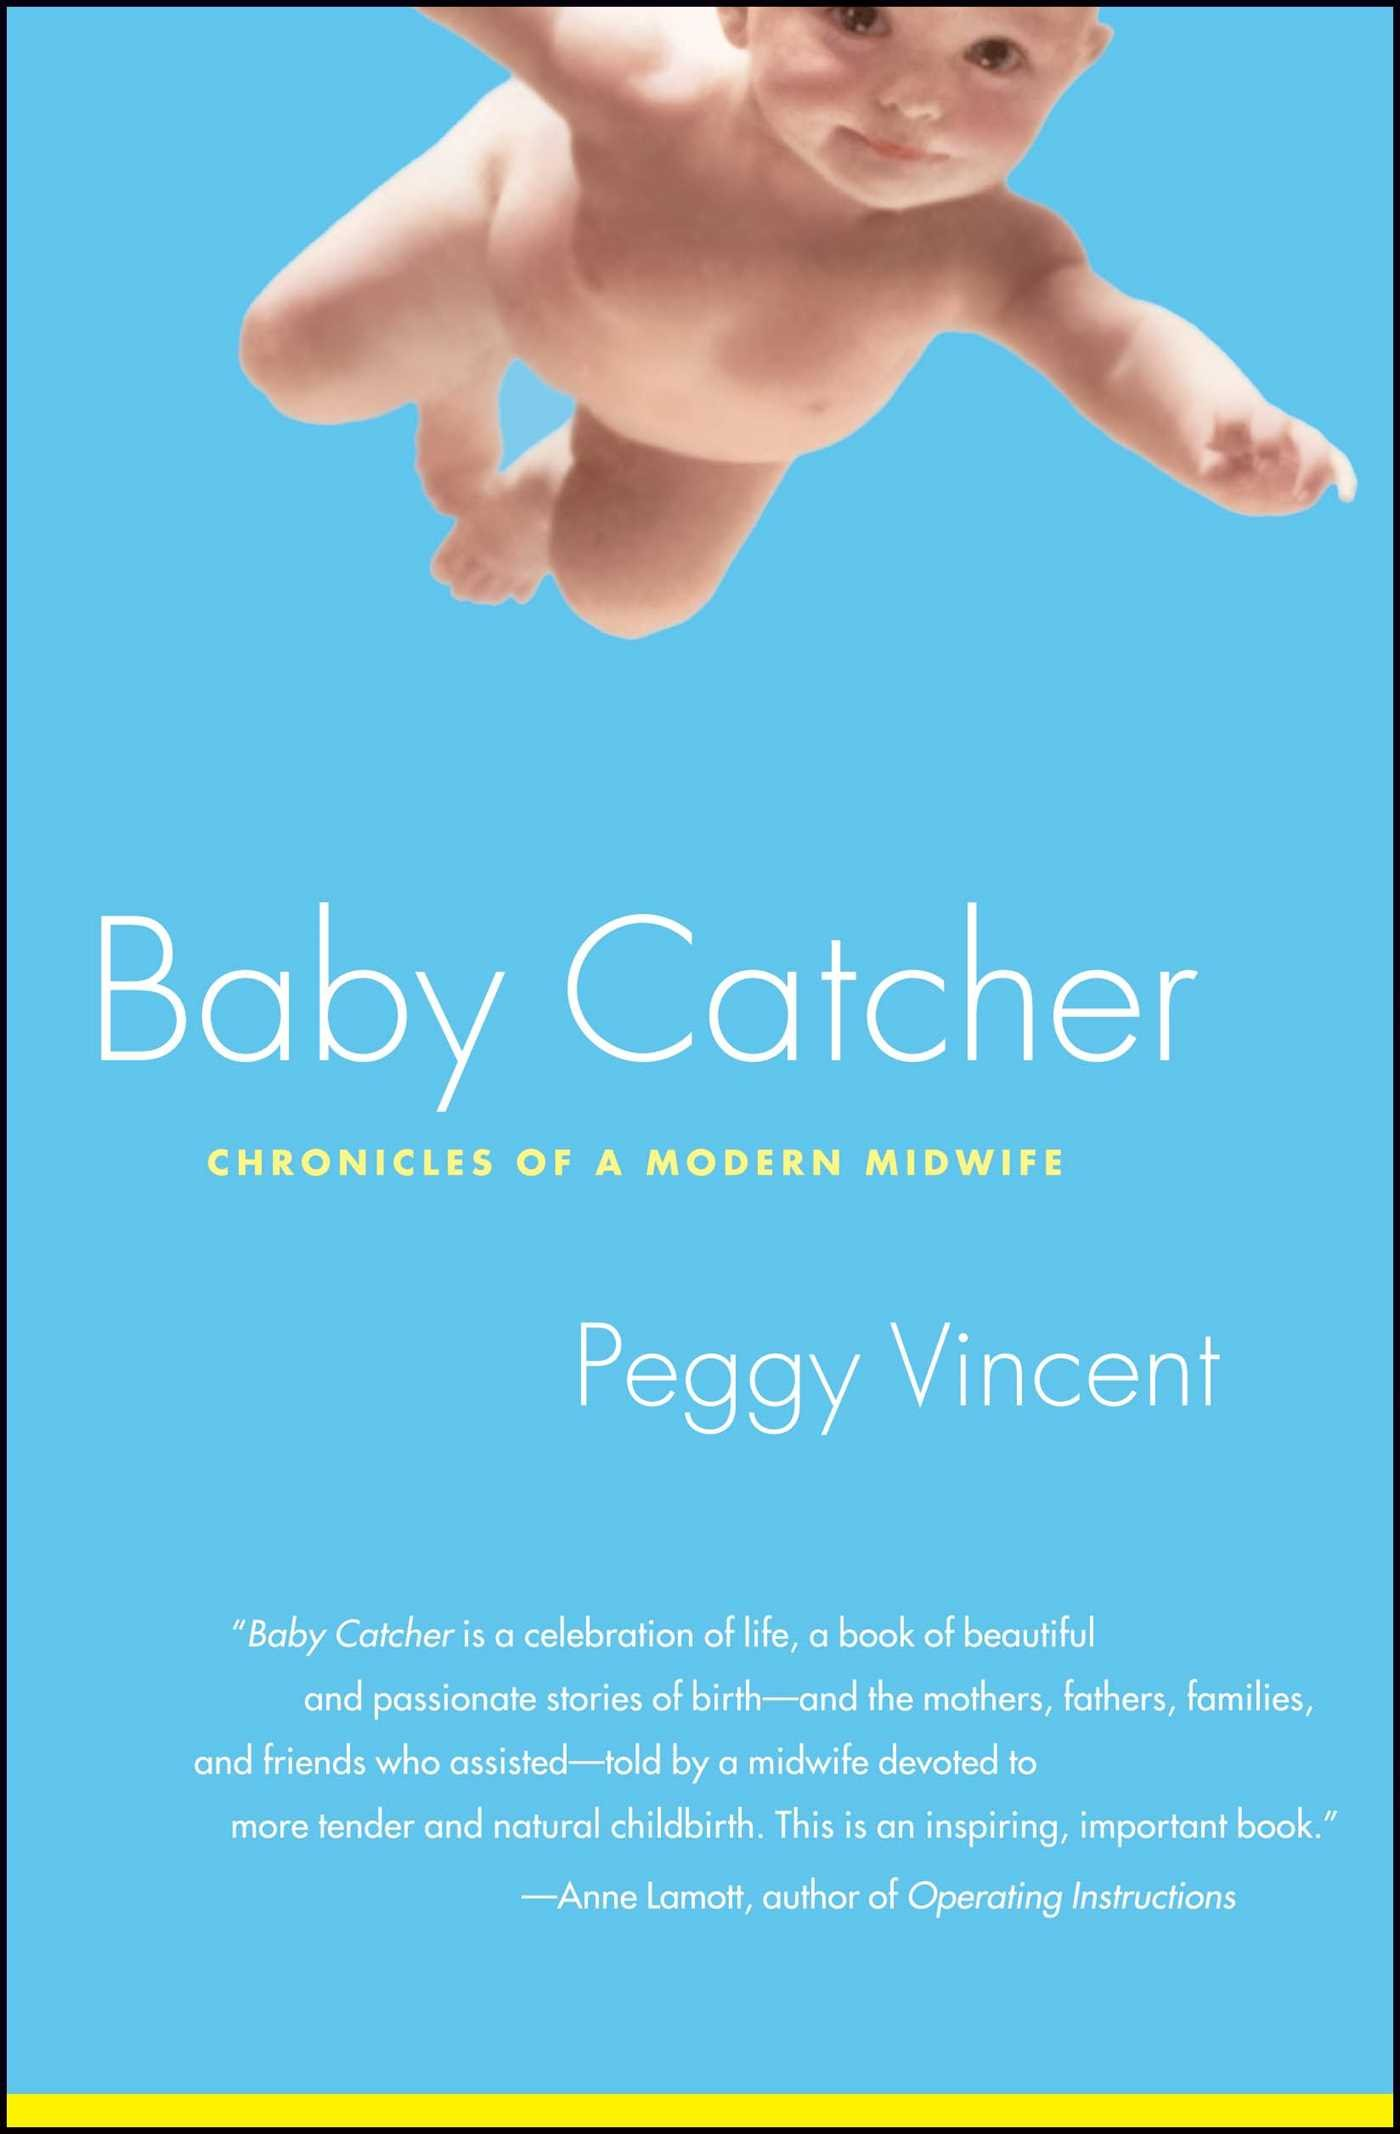 Baby Catcher Chronicles of a Modern Midwife Peggy Vincent